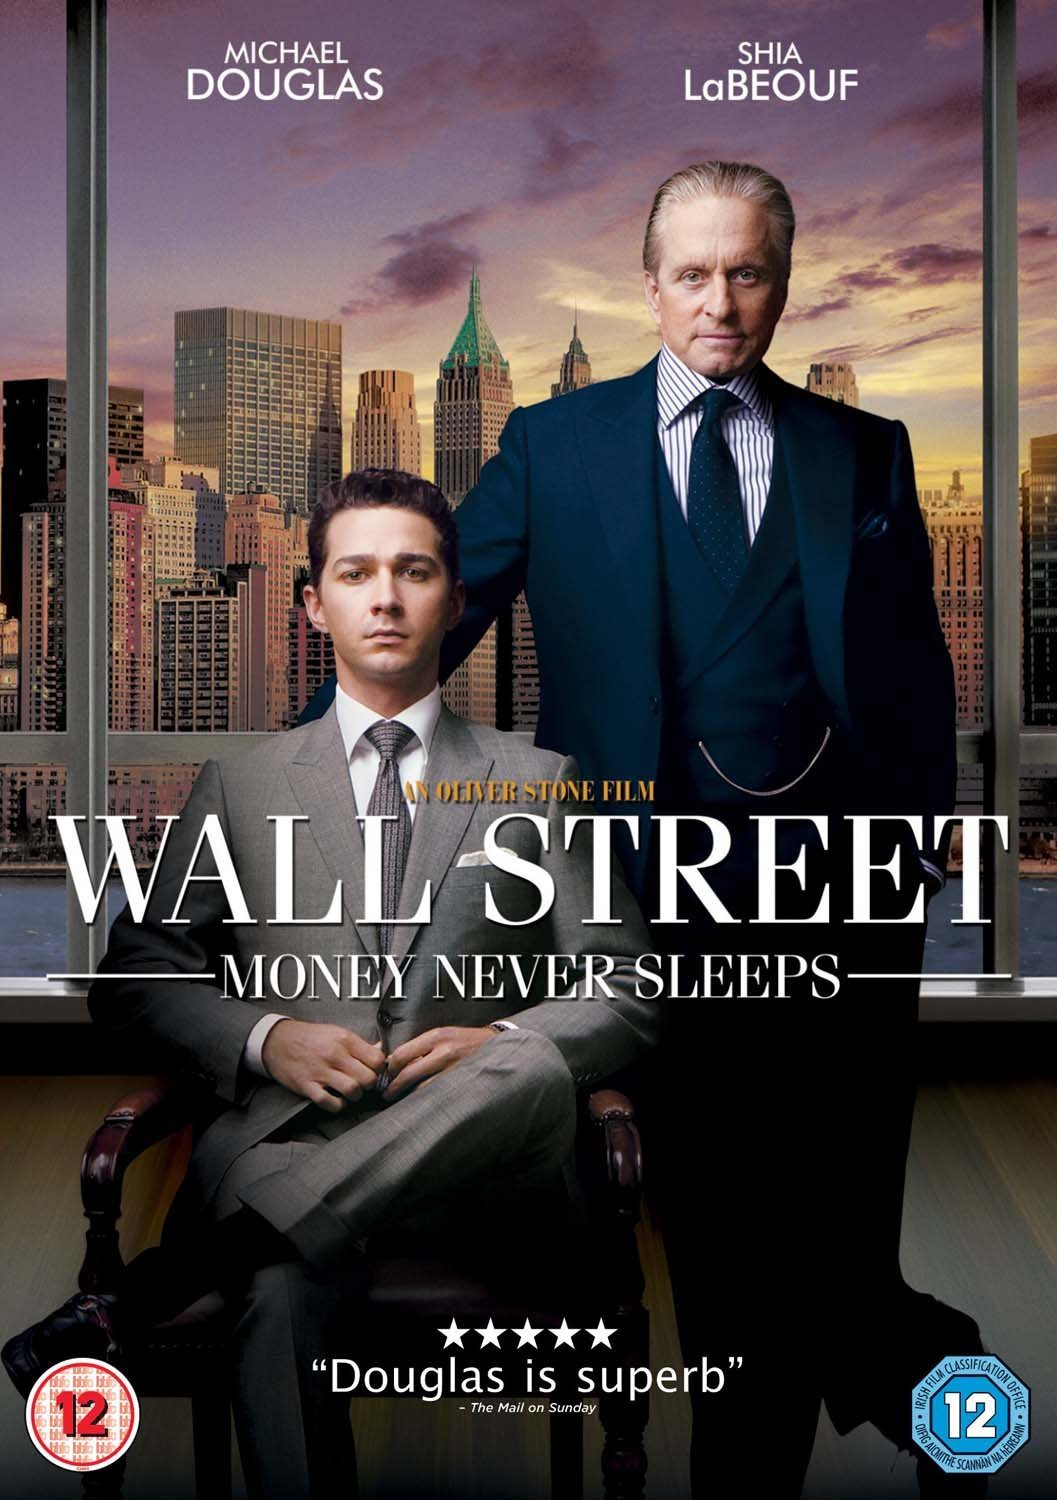 Wall Street: Money Never Sleeps | Official Trailer (HD) | 20th Century FOX